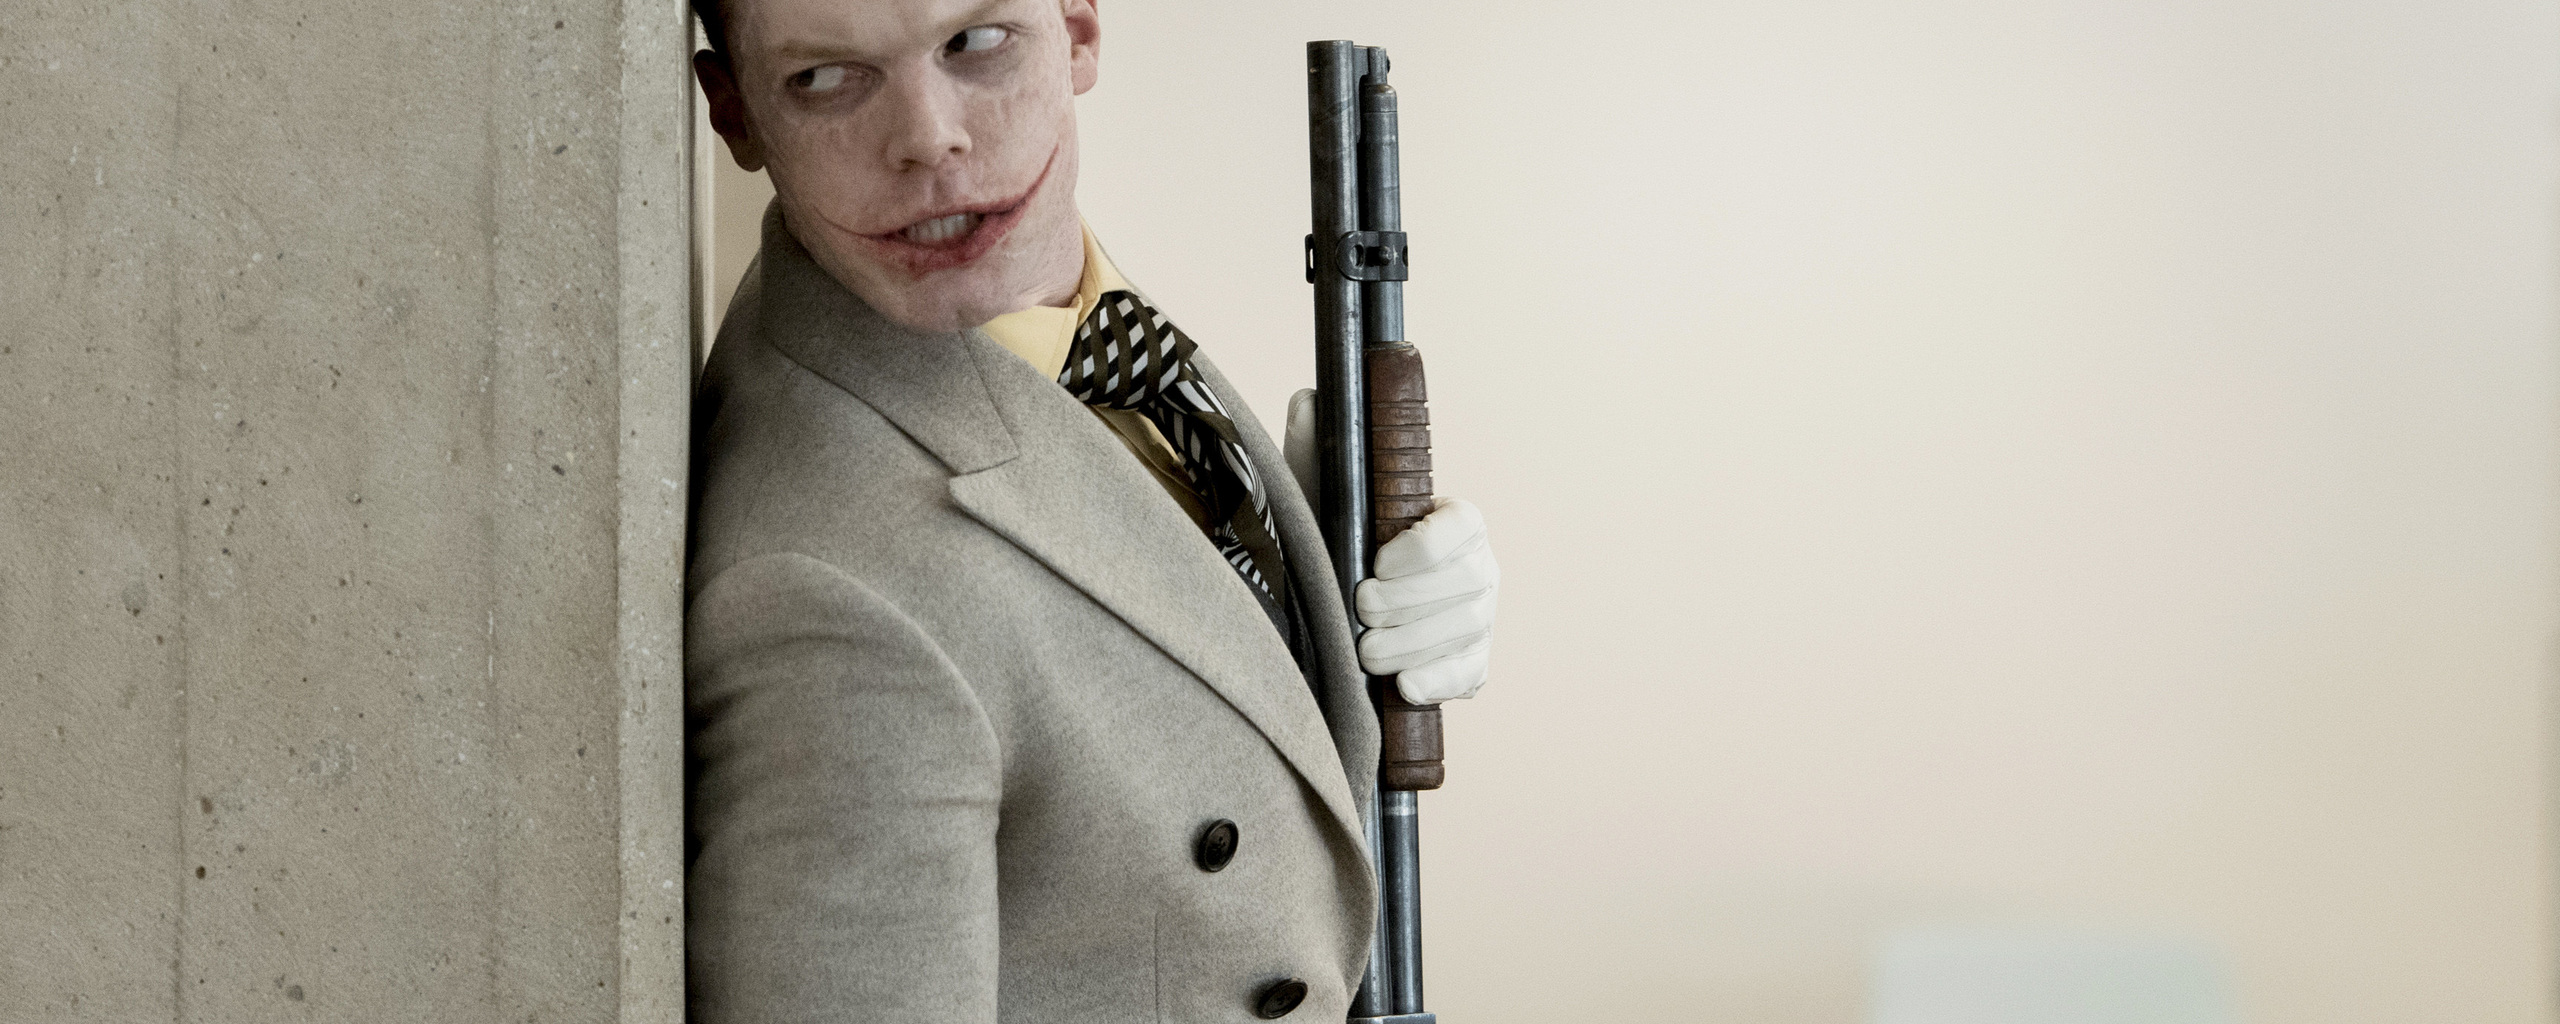 joker-in-gotham-season-4-gs.jpg